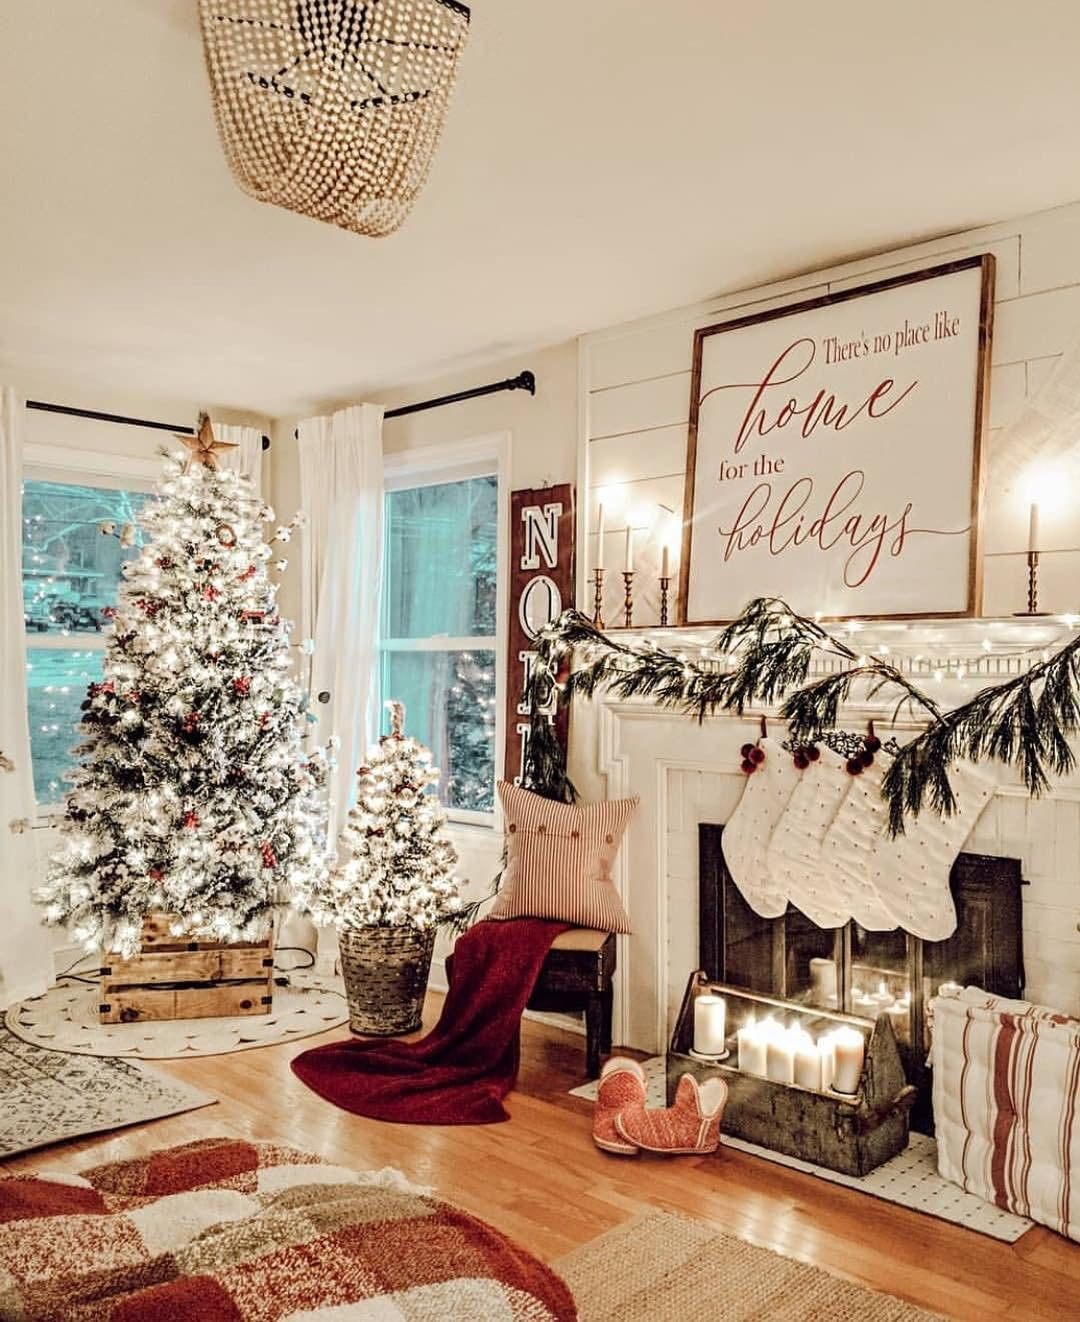 """Better Homes & Gardens on Instagram: """"�There's no place like home for the holidays� Everything looks like it was hung with care in @farm_decor_momma's charming living room! You…"""""""